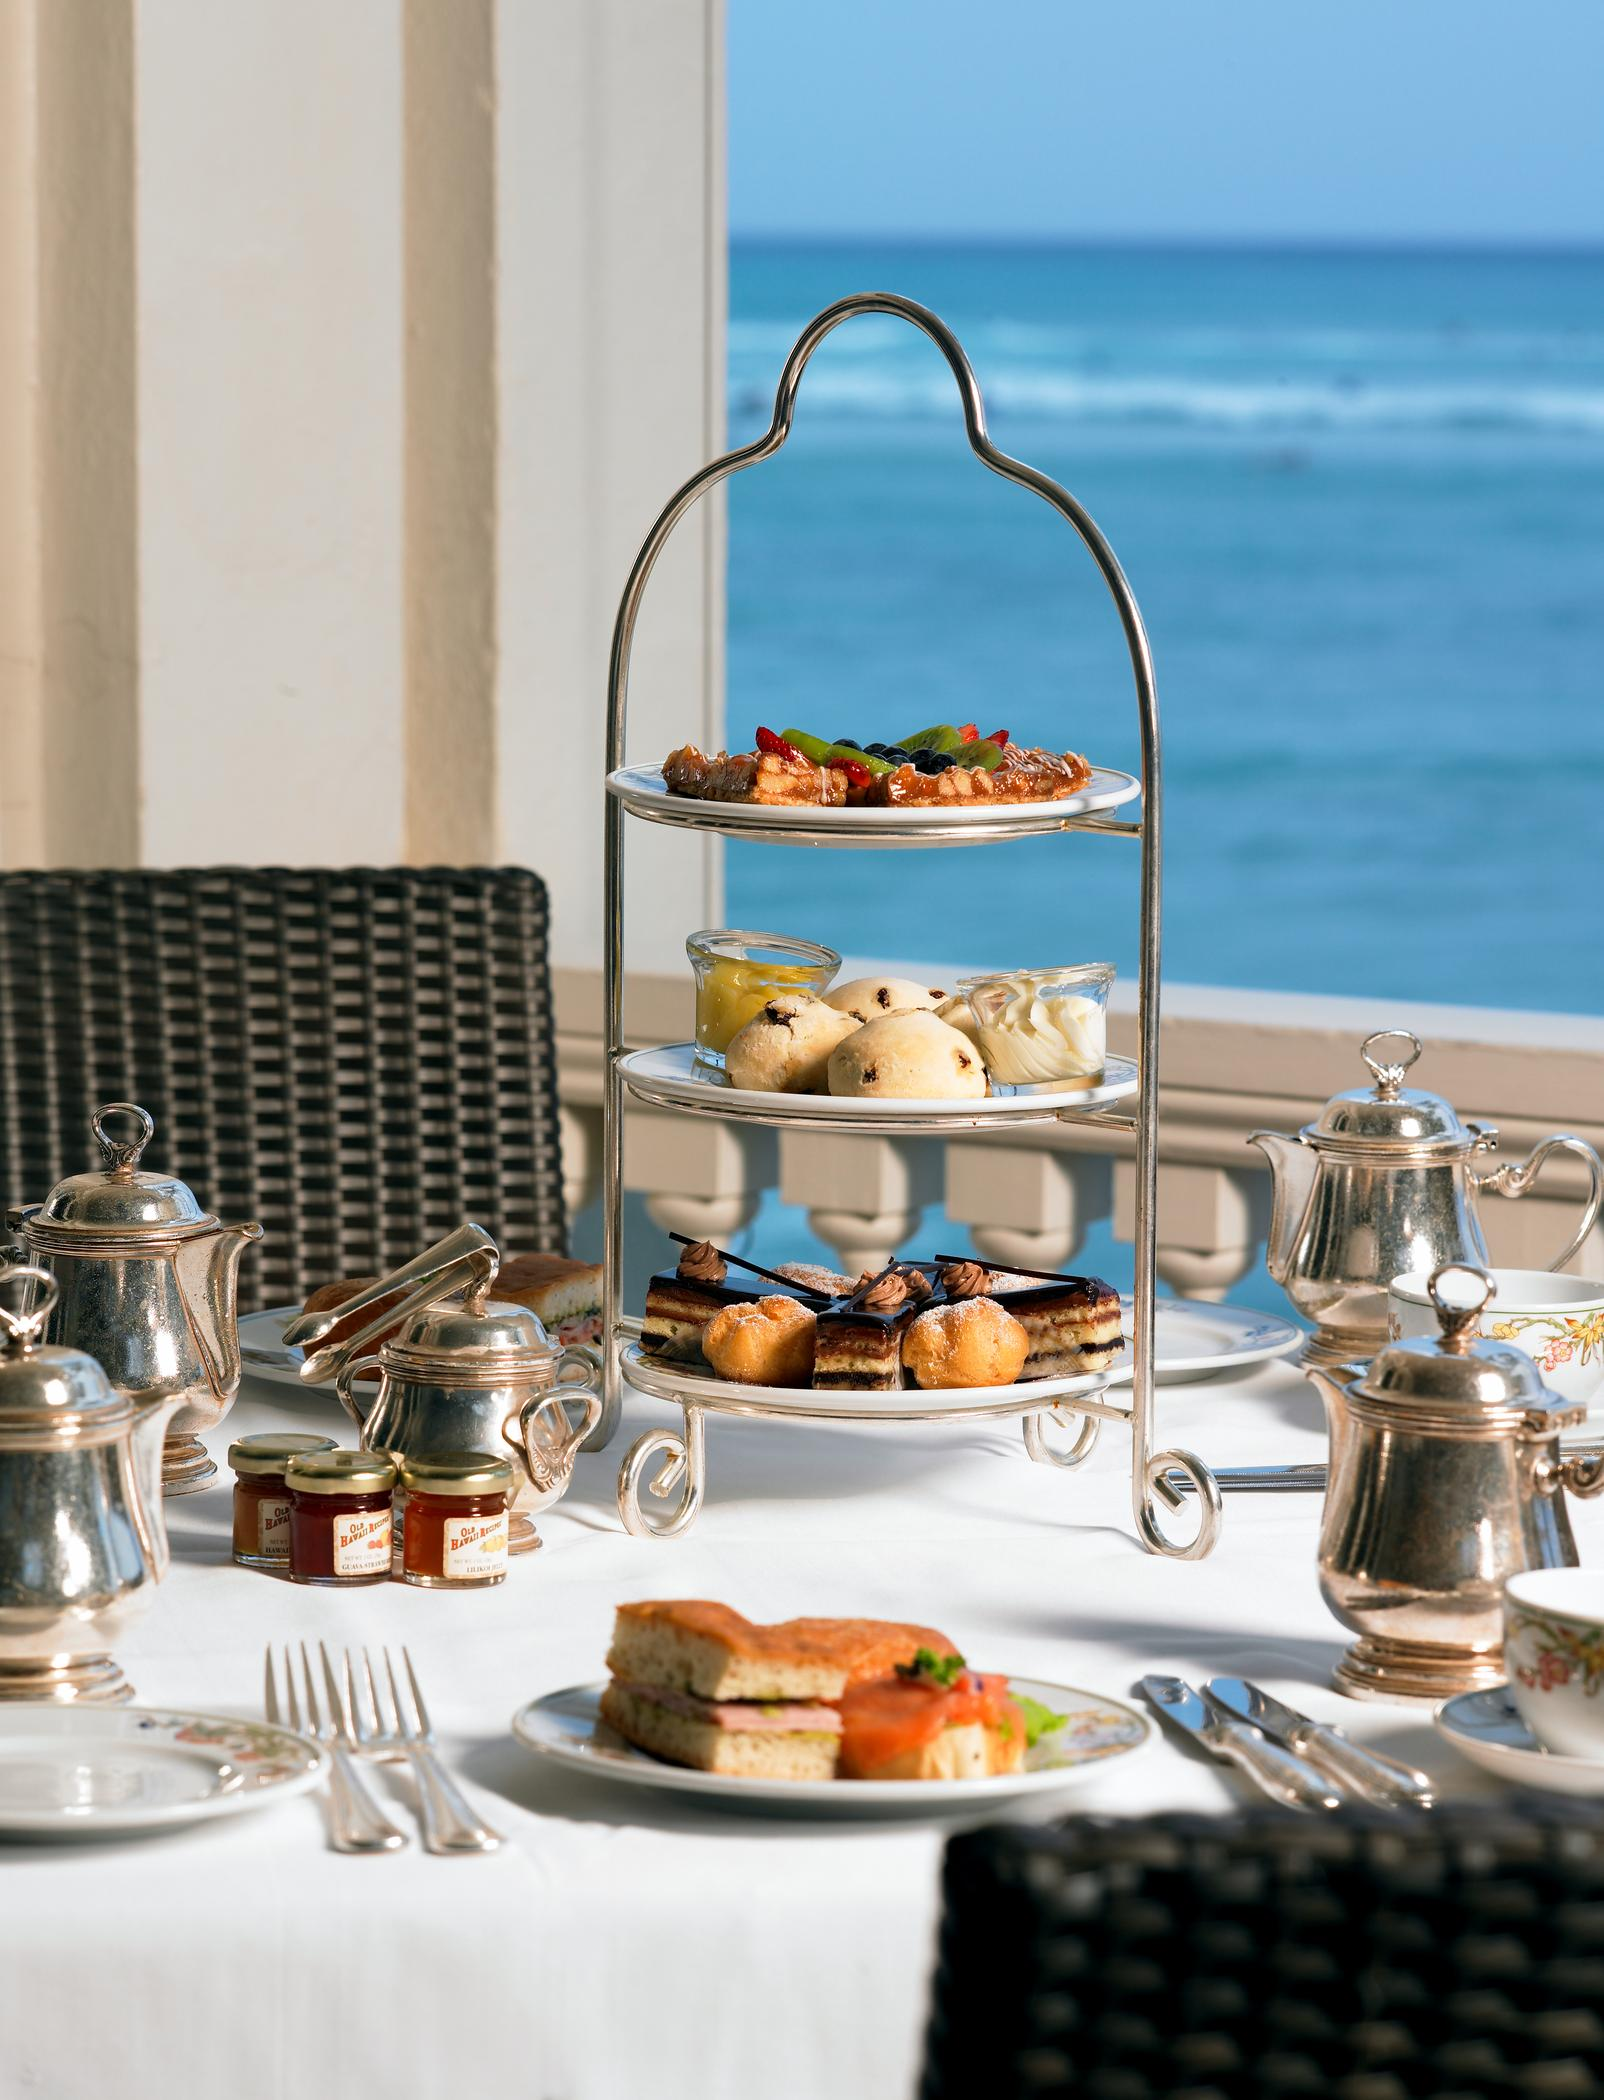 Moana Surfrider Hotel -The Veranda Afternoon Tea